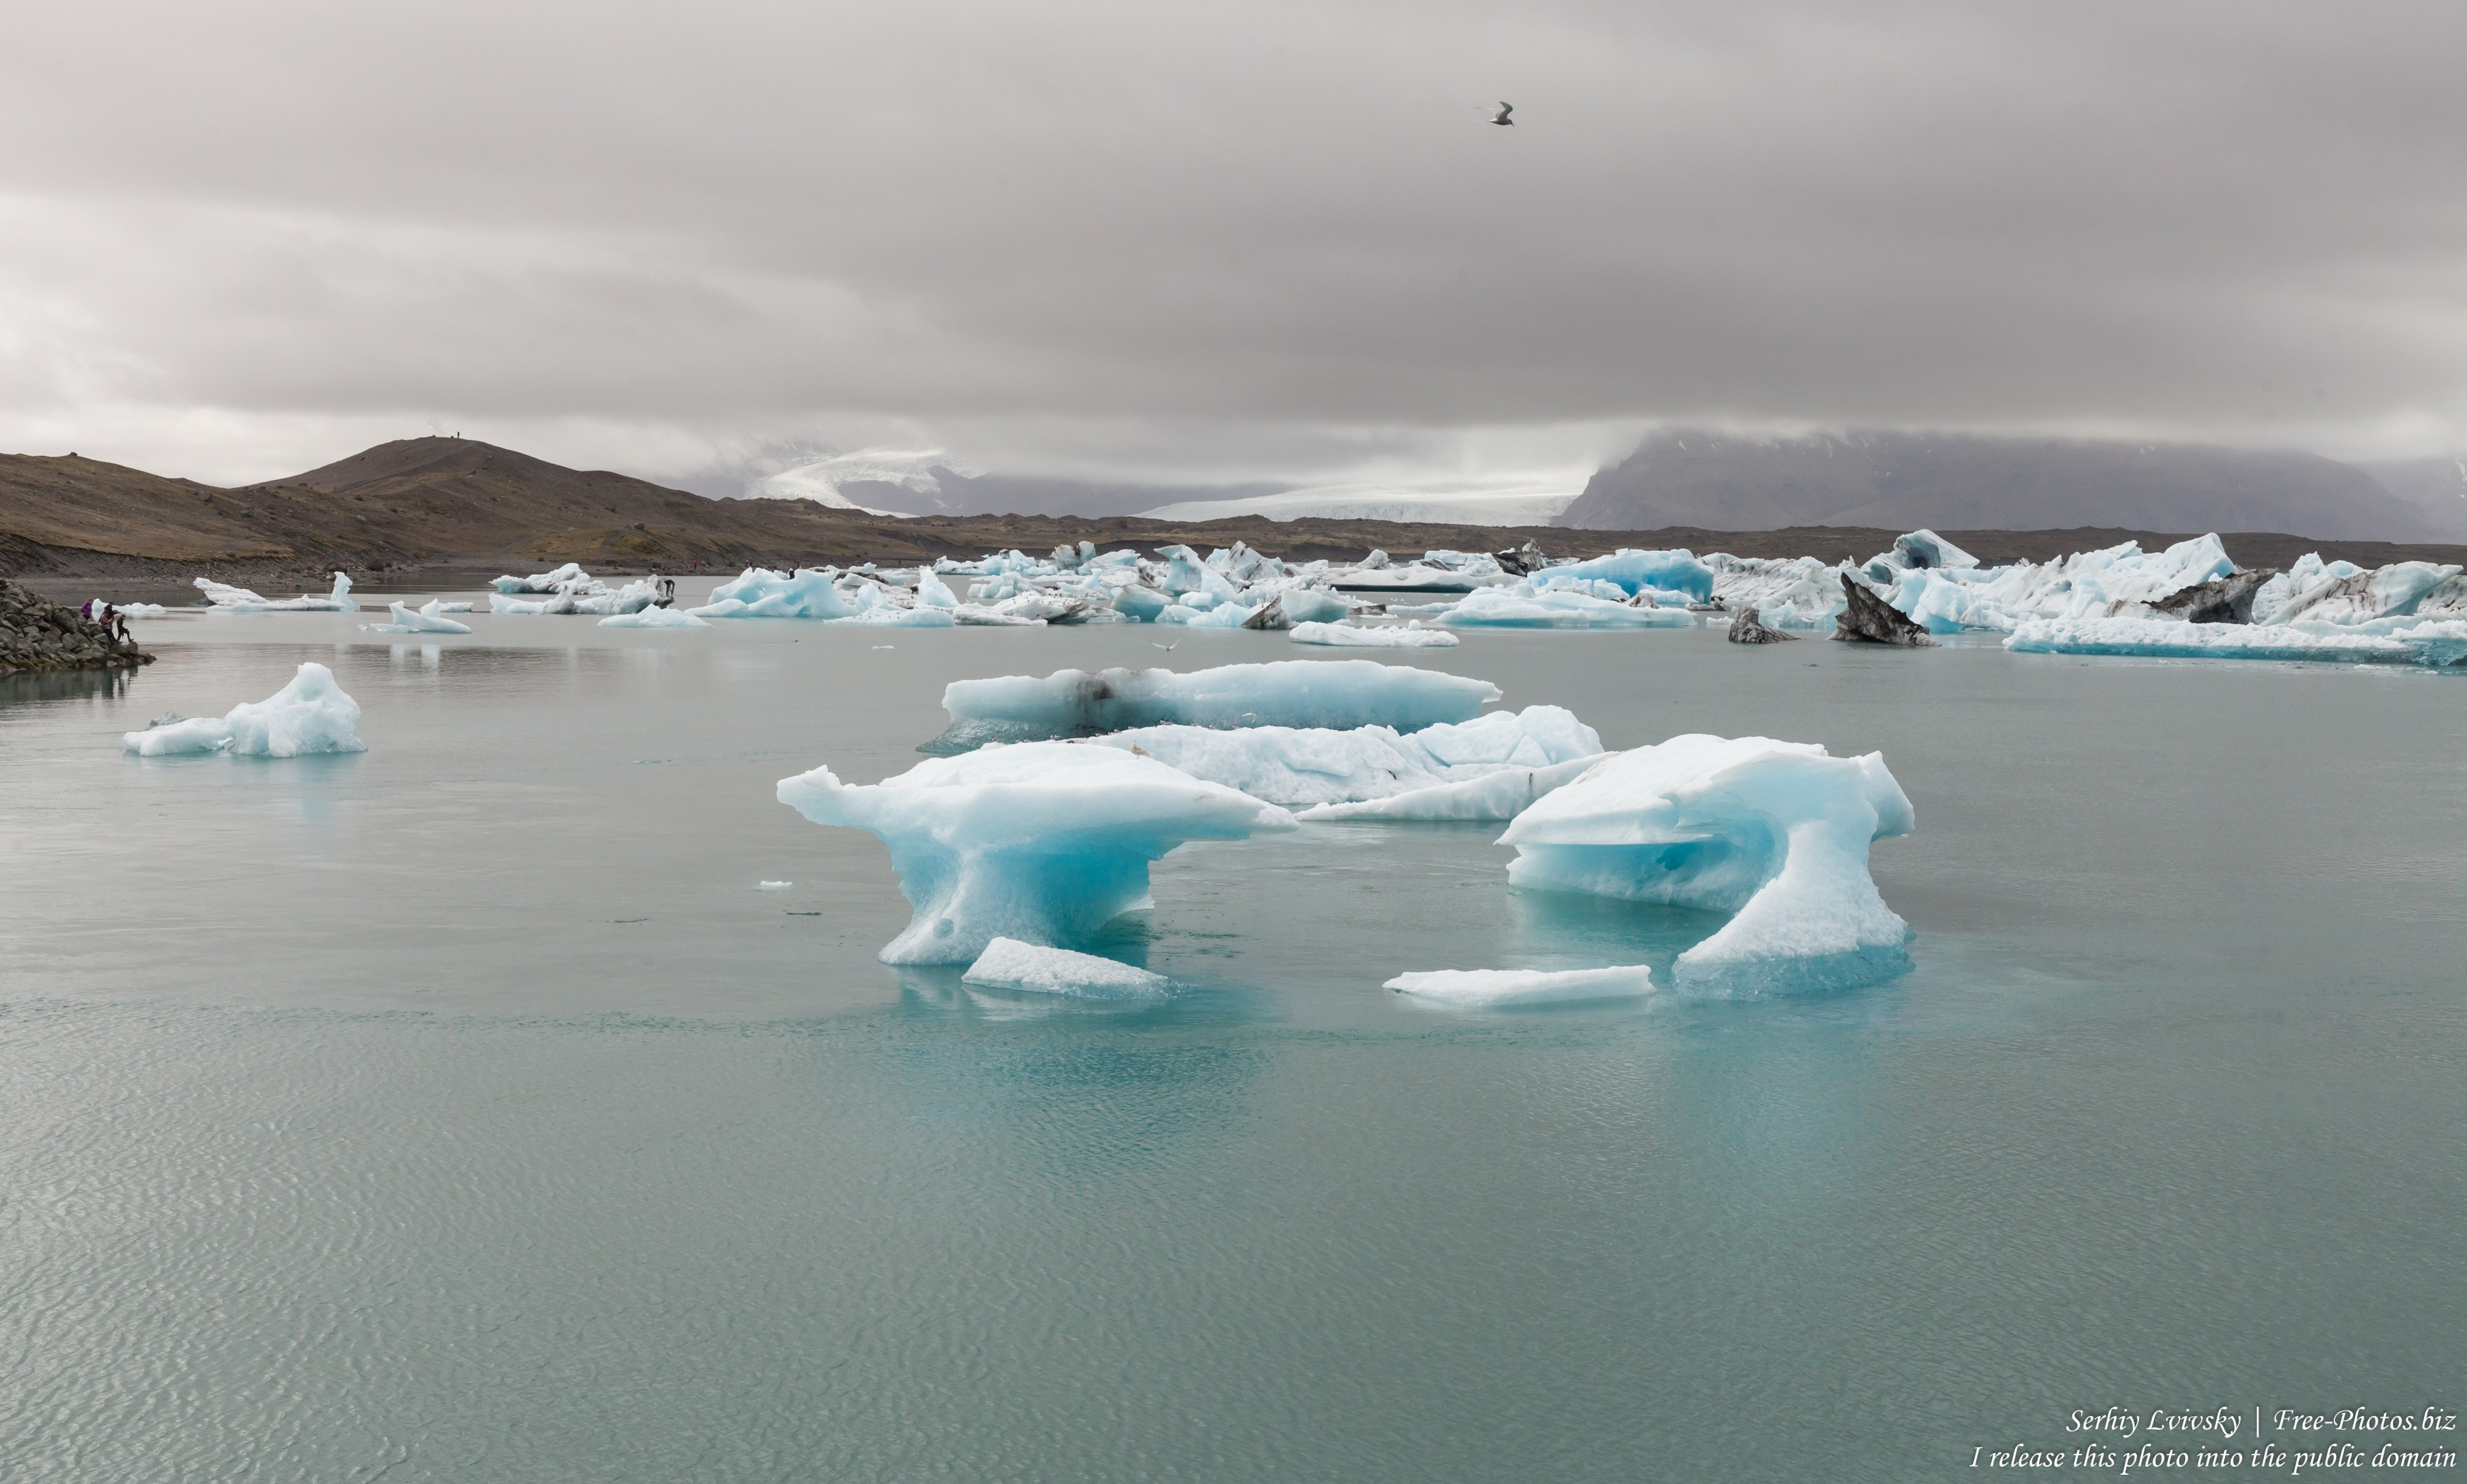 Jokulsarlon Glacier Lagoon, Iceland, photographed in May 2019 by Serhiy Lvivsky, photo 4